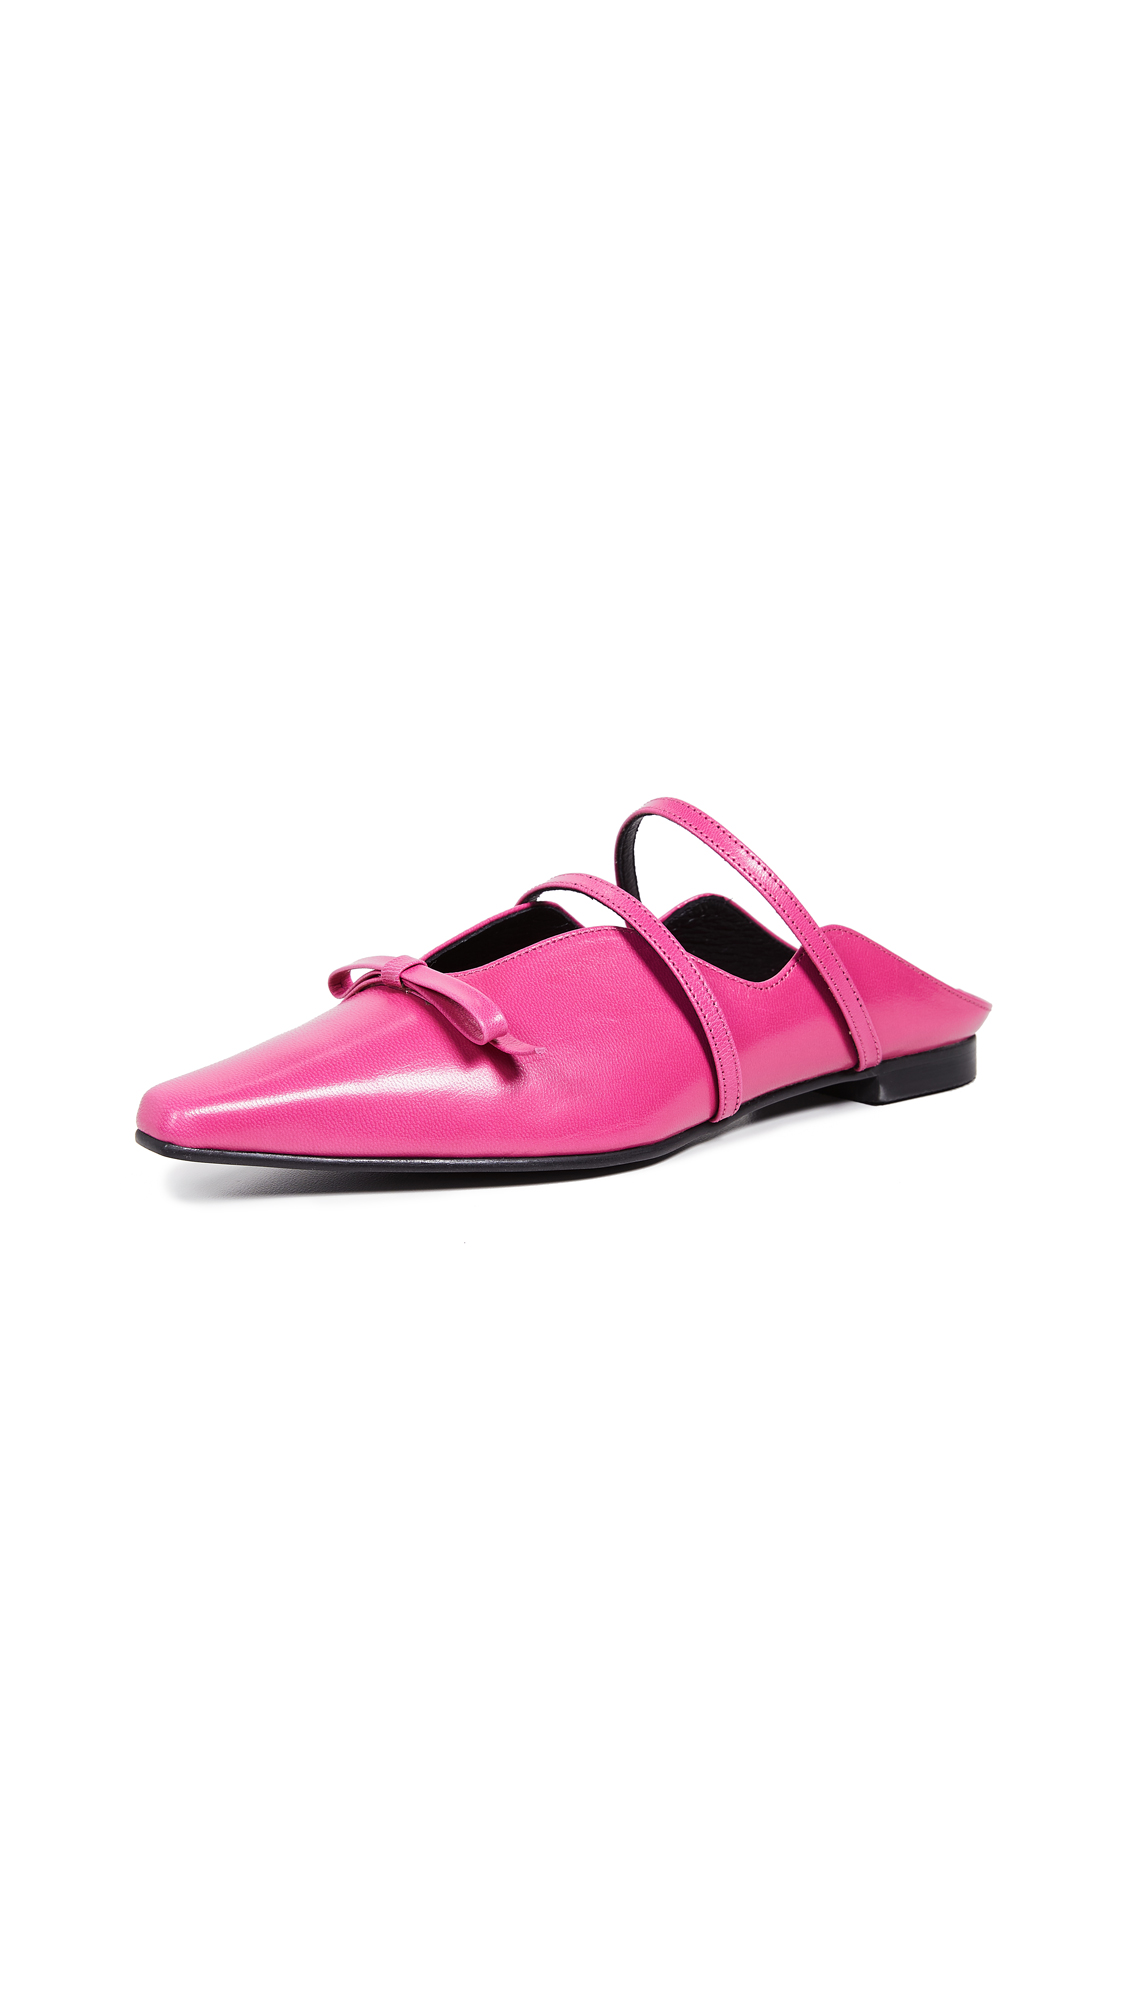 Yuul Yie Abel Flats - Hot Pink